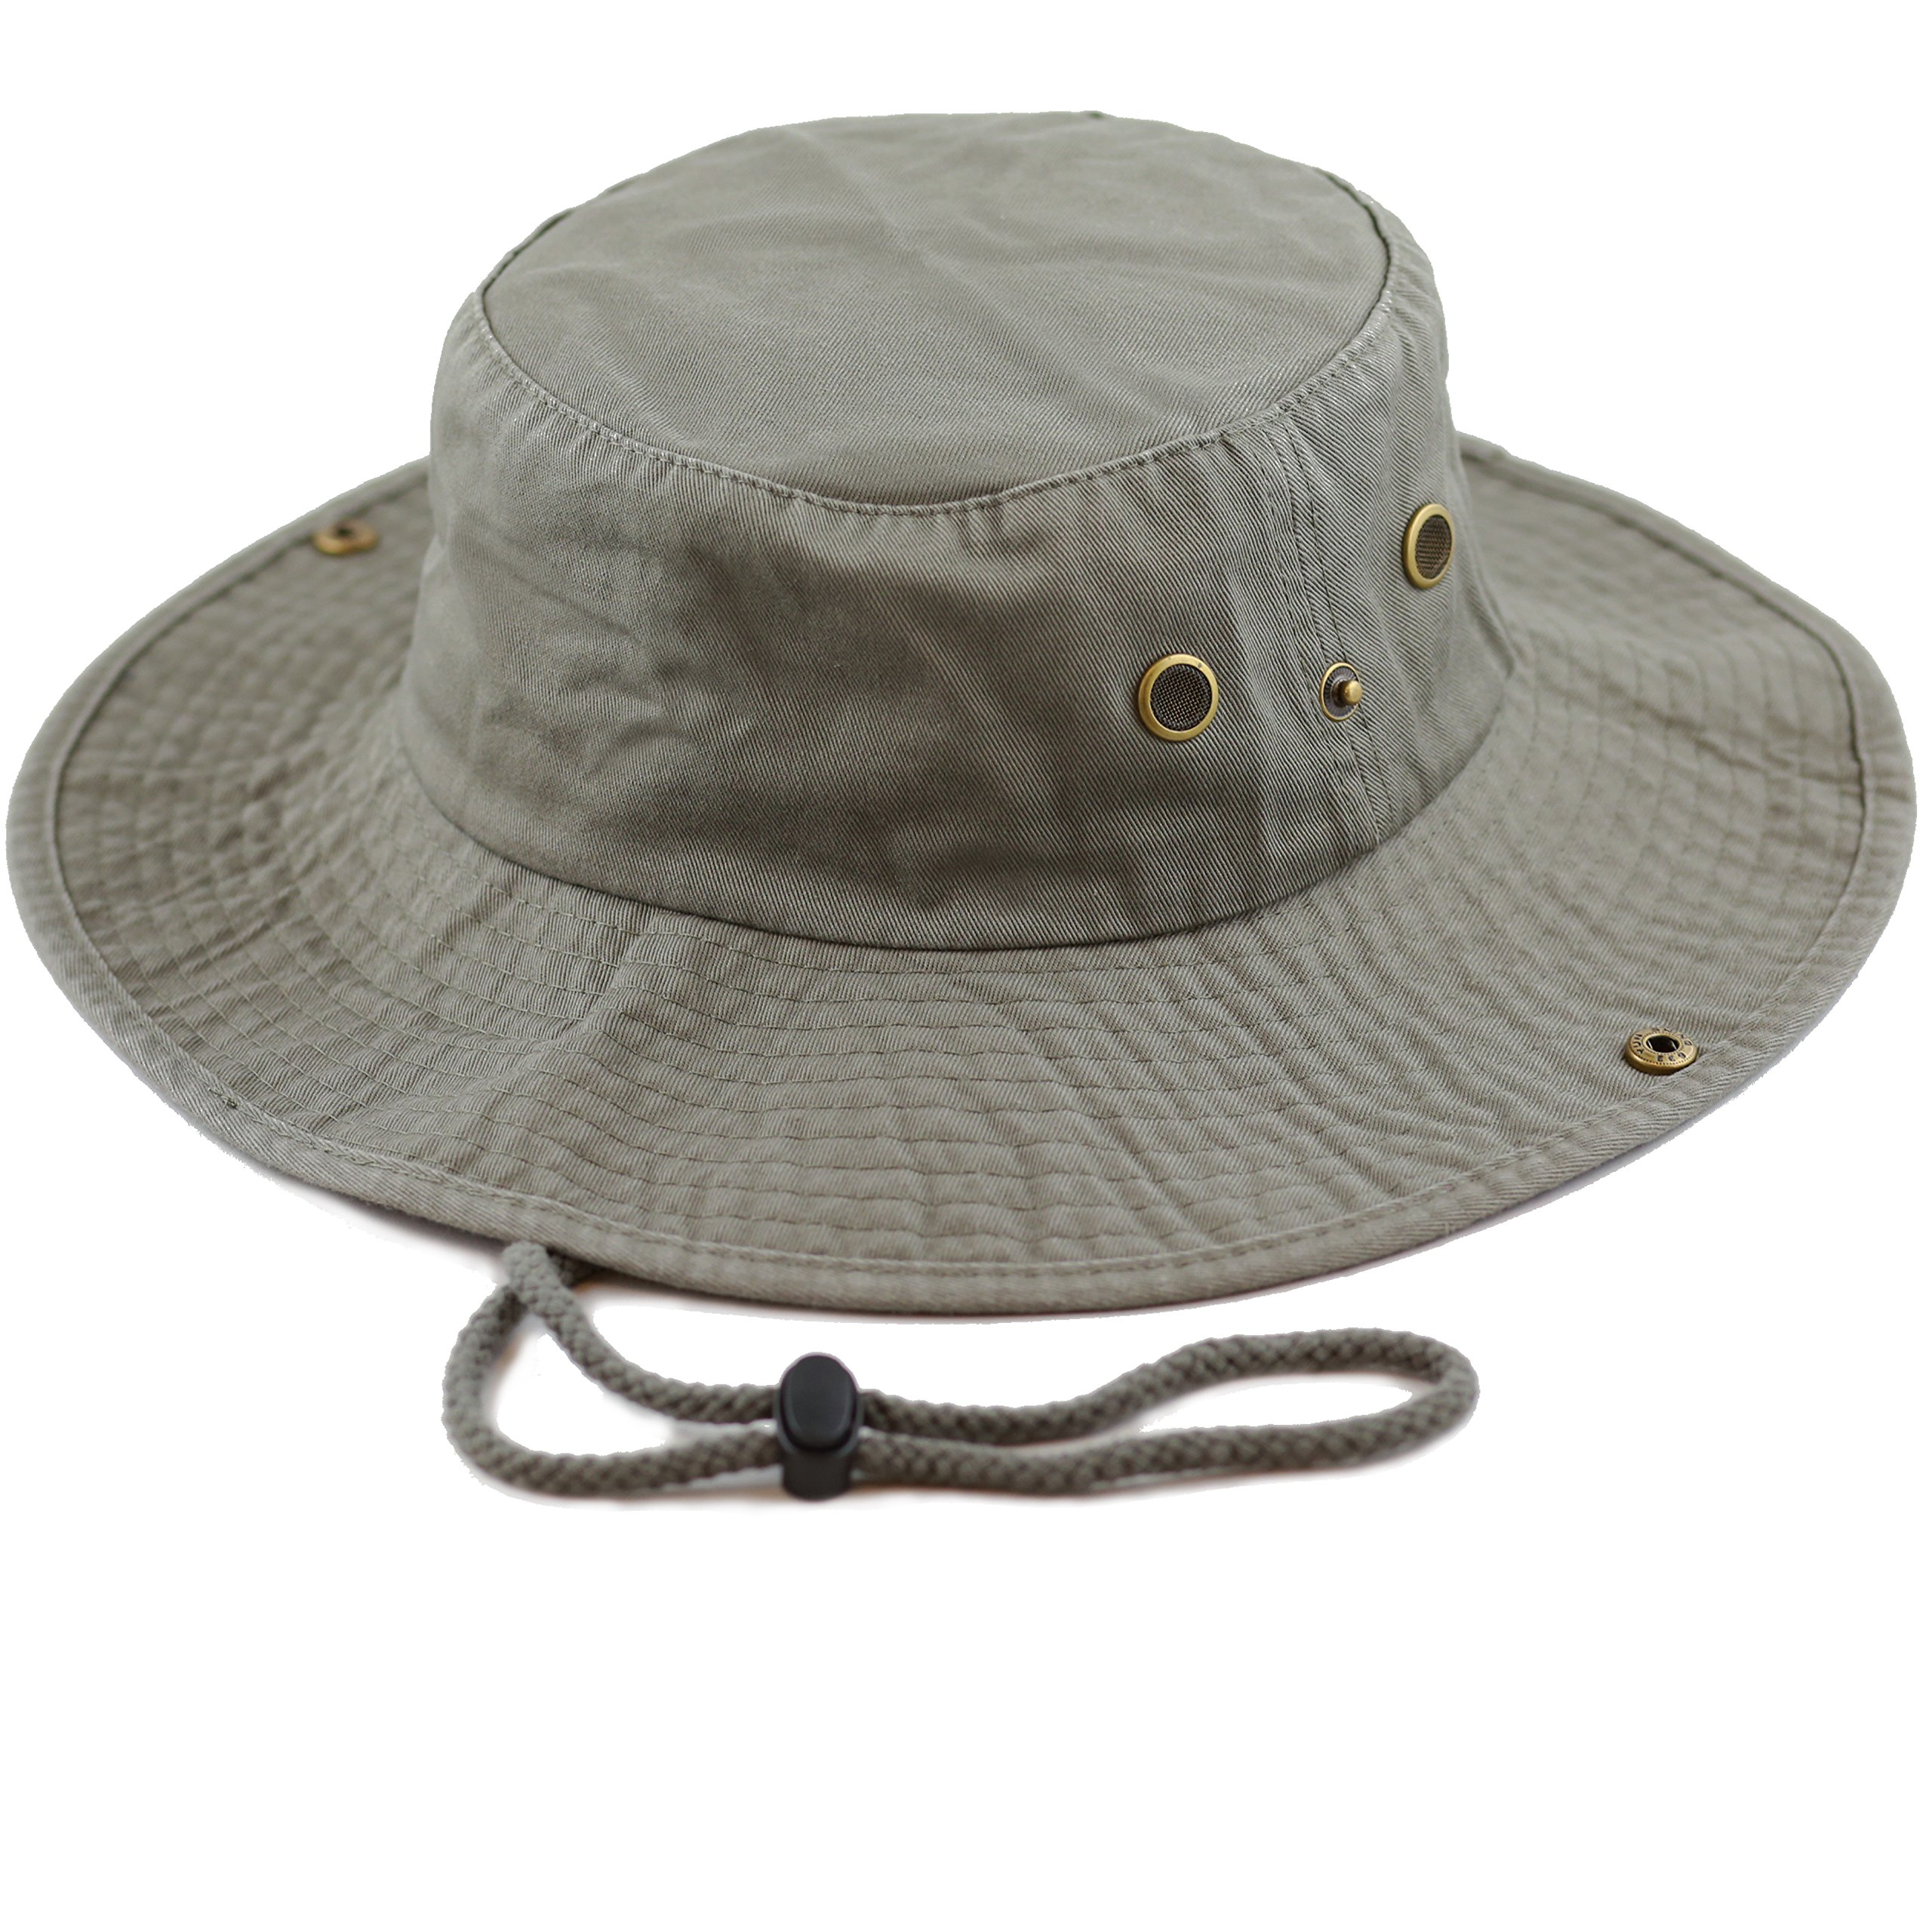 THE HAT DEPOT 300N1510 Wide Brim Foldable Double-Sided Outdoor Boonie Bucket Hat (L/XL, Olive)